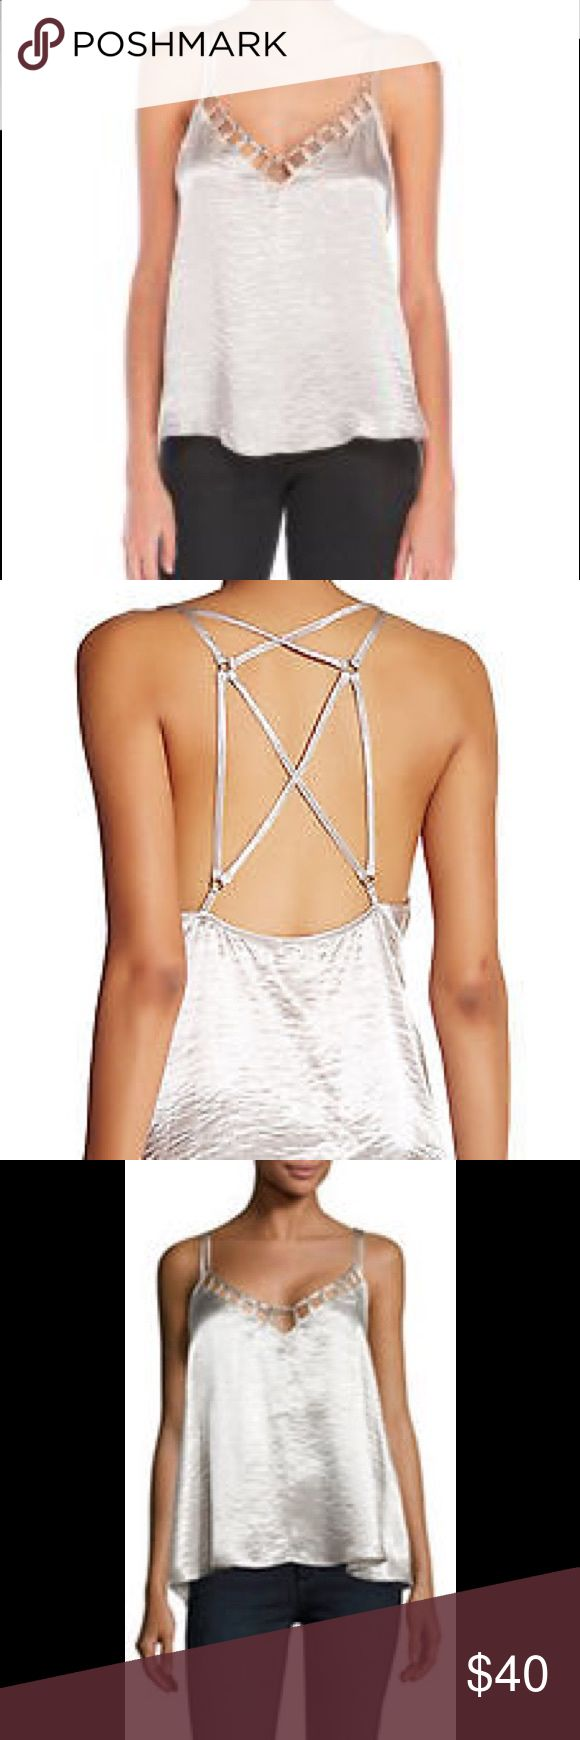 Free people metallic silver strappy tank top M New with tags free people tank top in silver metallic haze with a strappy back. Size medium and nice and flowy. Smoke and pet free home no trades Free People Tops Tank Tops